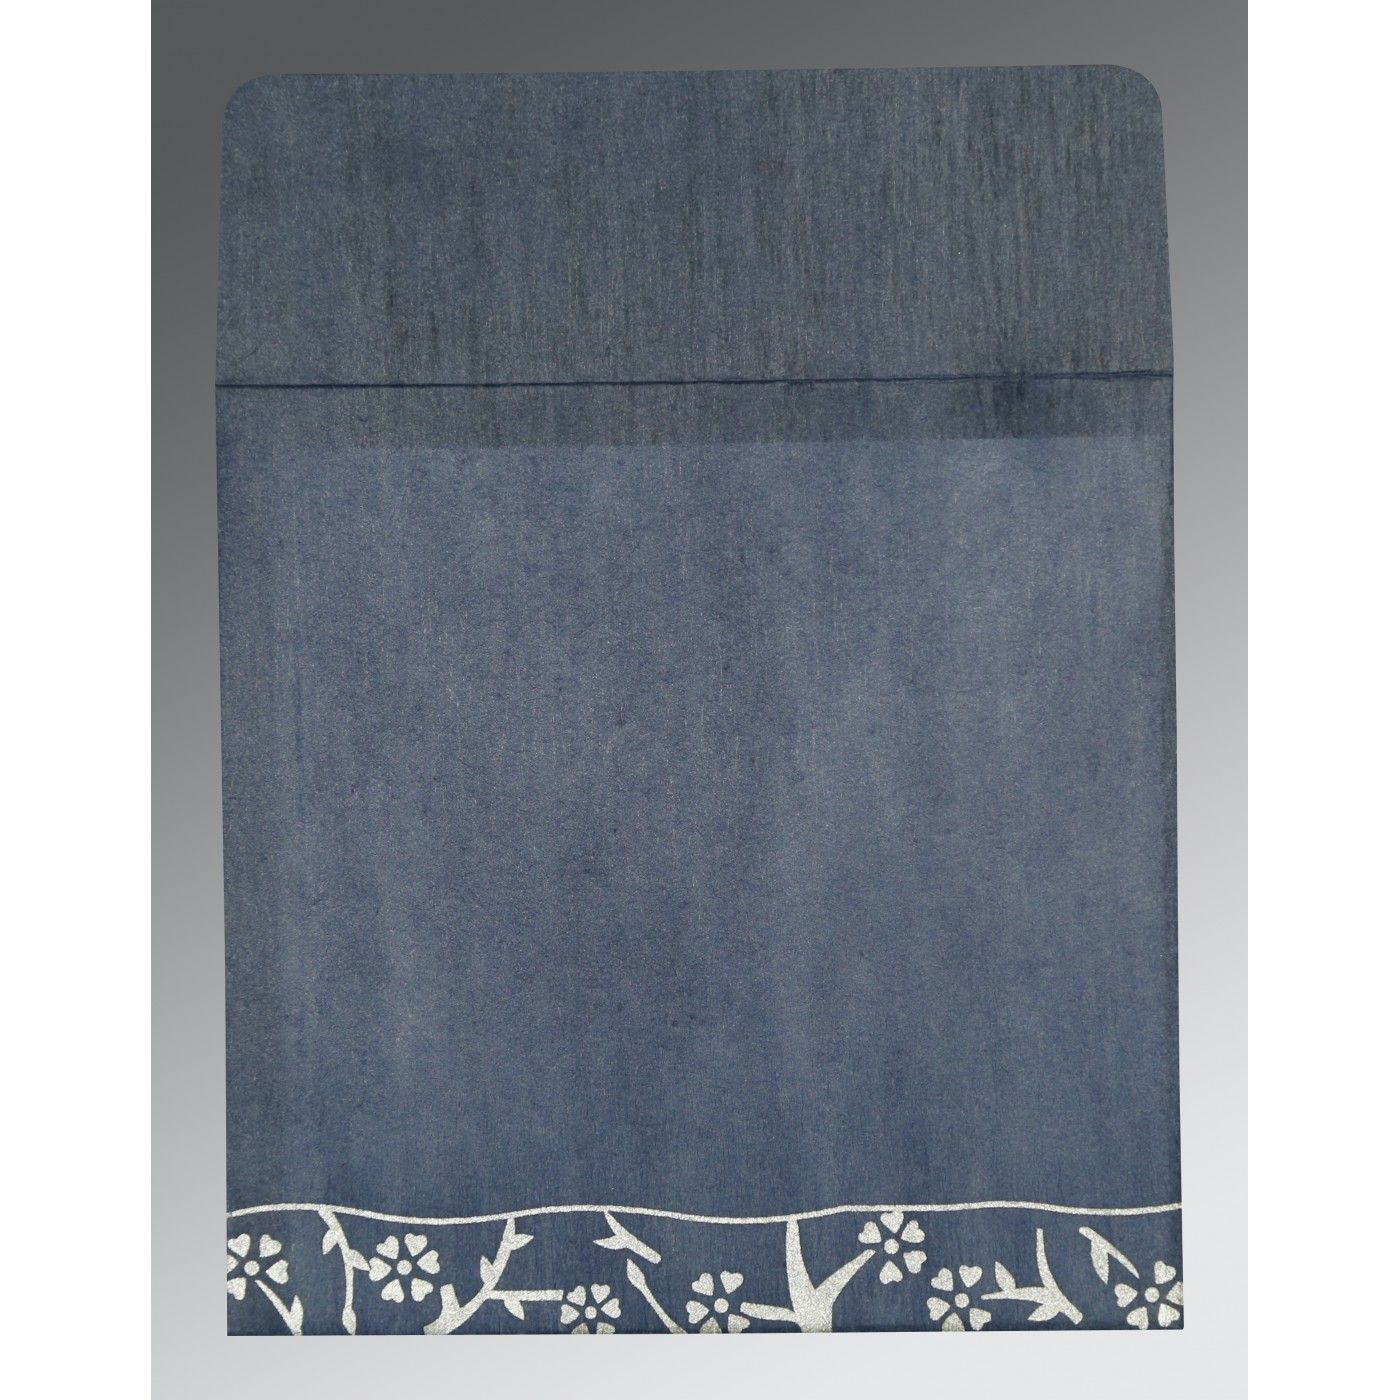 SMOKE BLUE WOOLY FLORAL THEMED - SCREEN PRINTED WEDDING INVITATION : CS-8216D - IndianWeddingCards